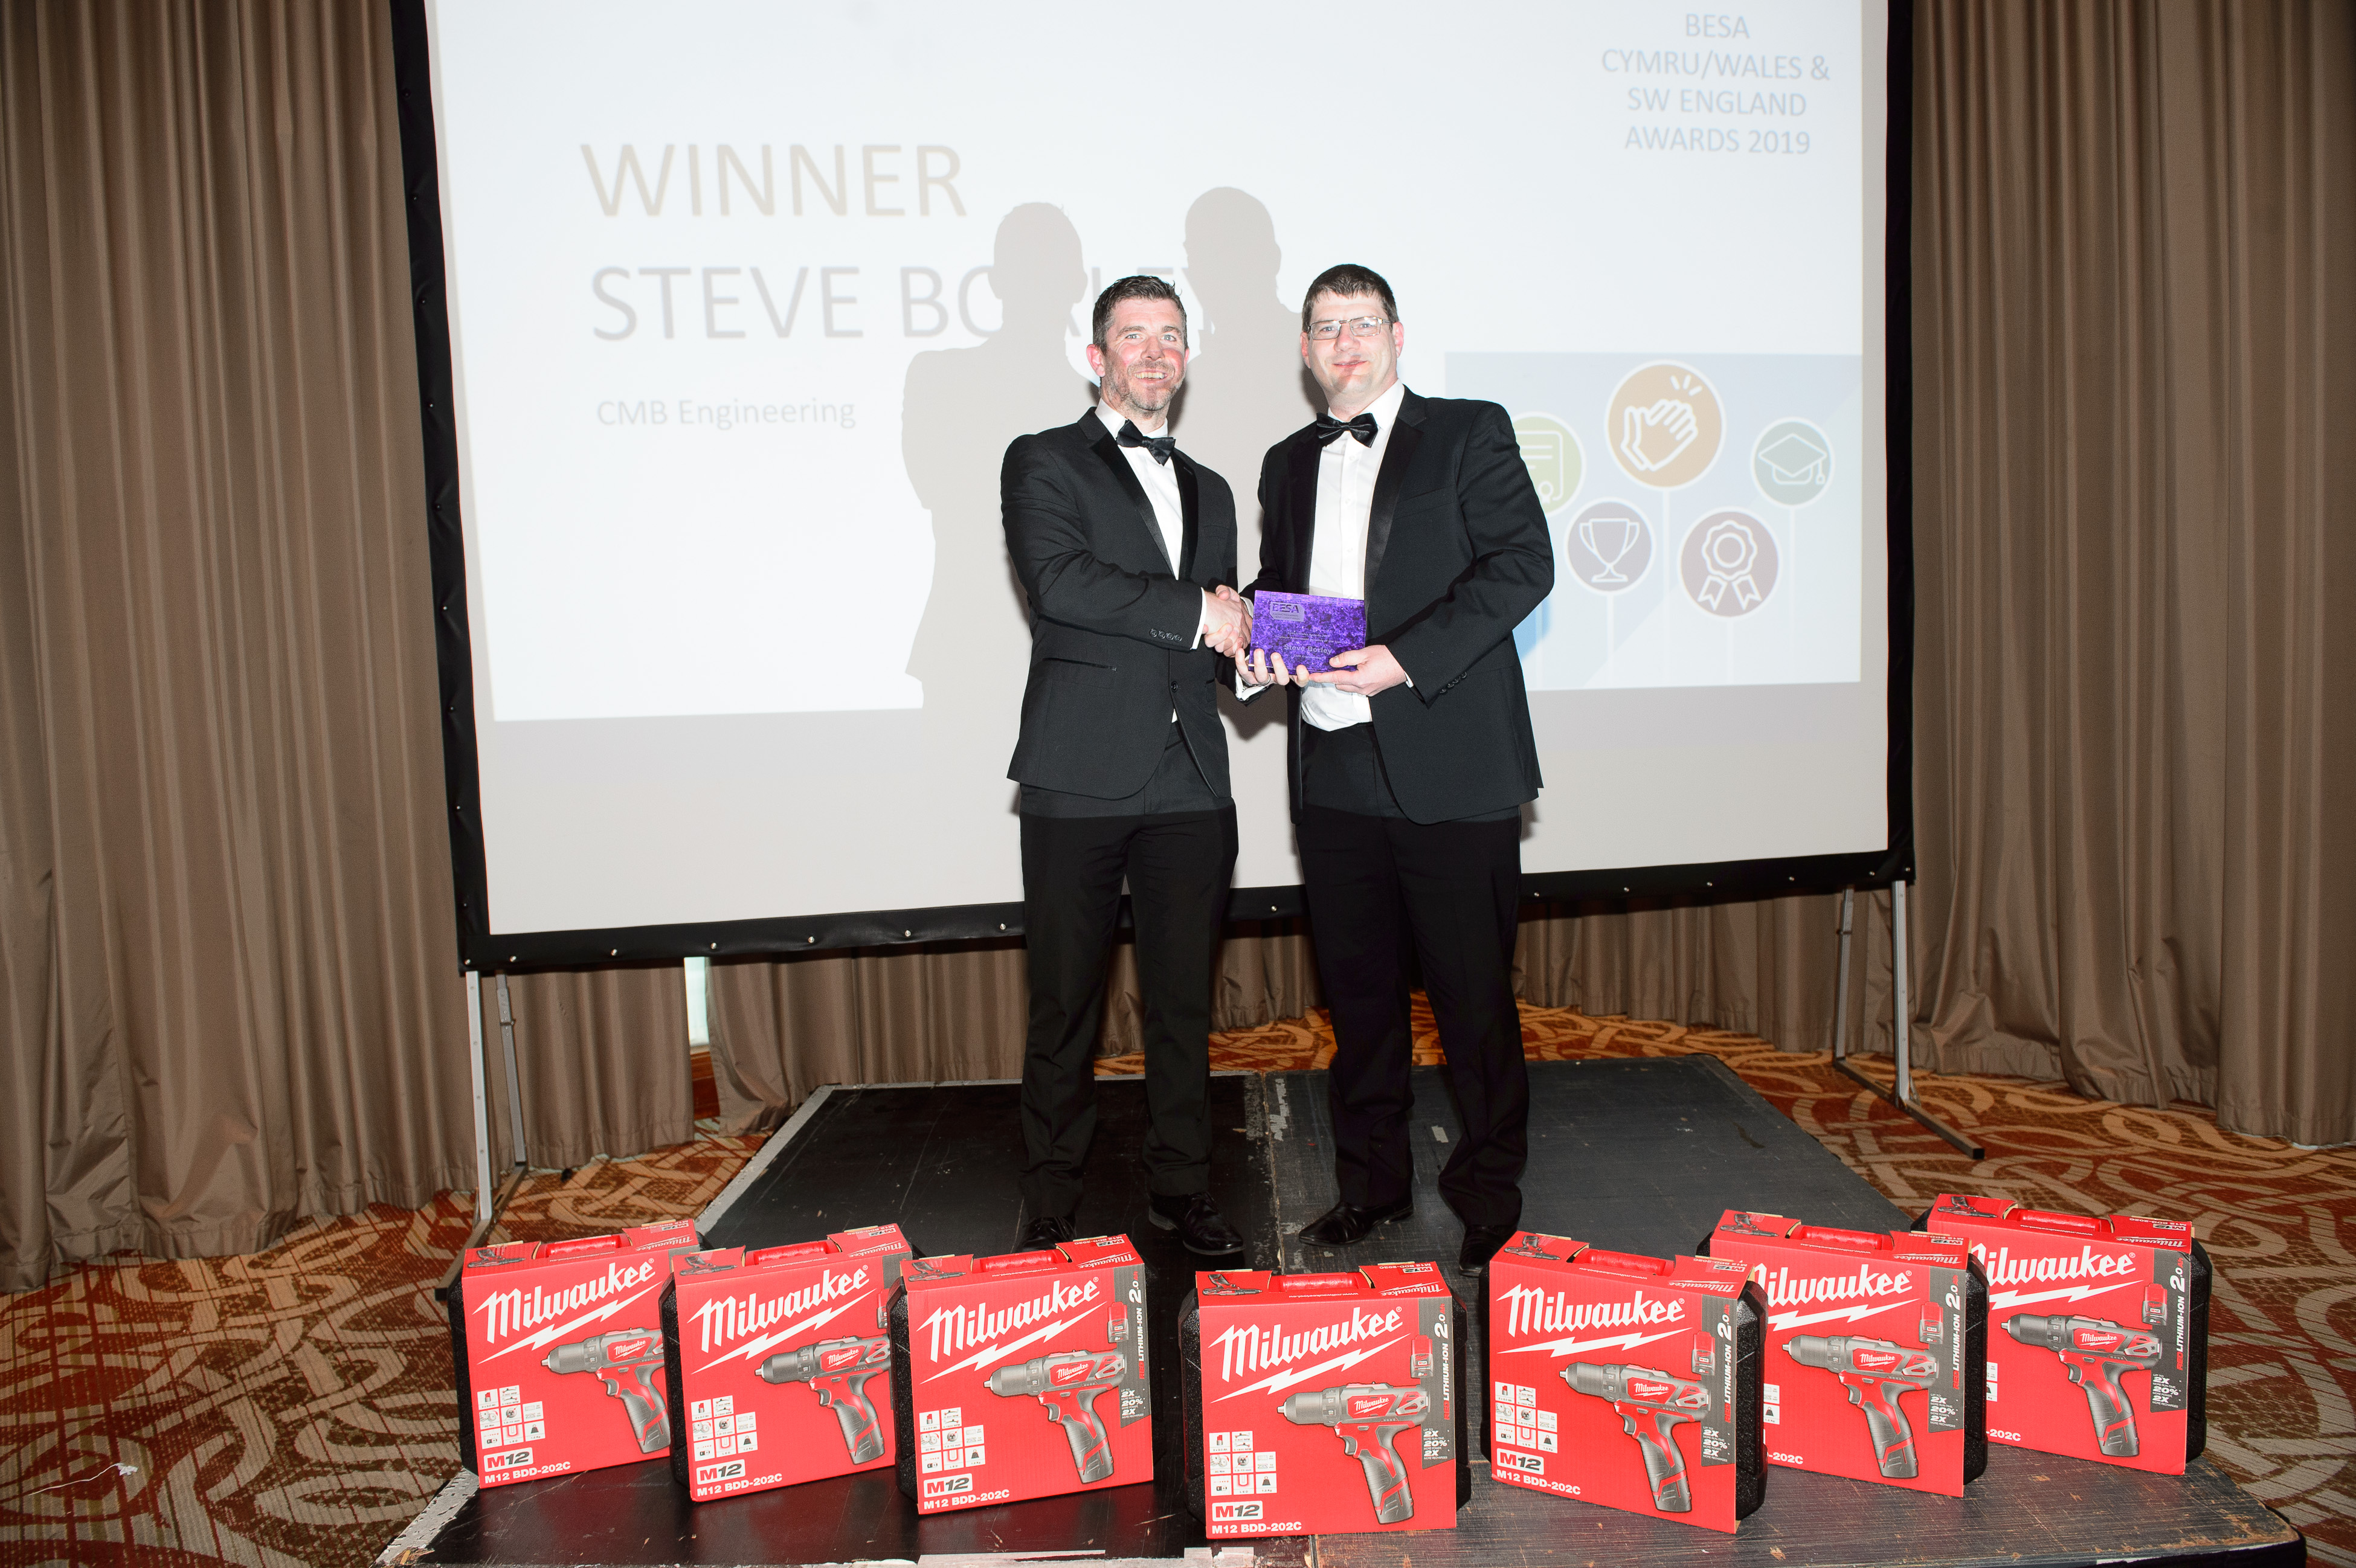 Steve Borley, CMB Engineering, Emplouer Recruitment Initiative of the Year